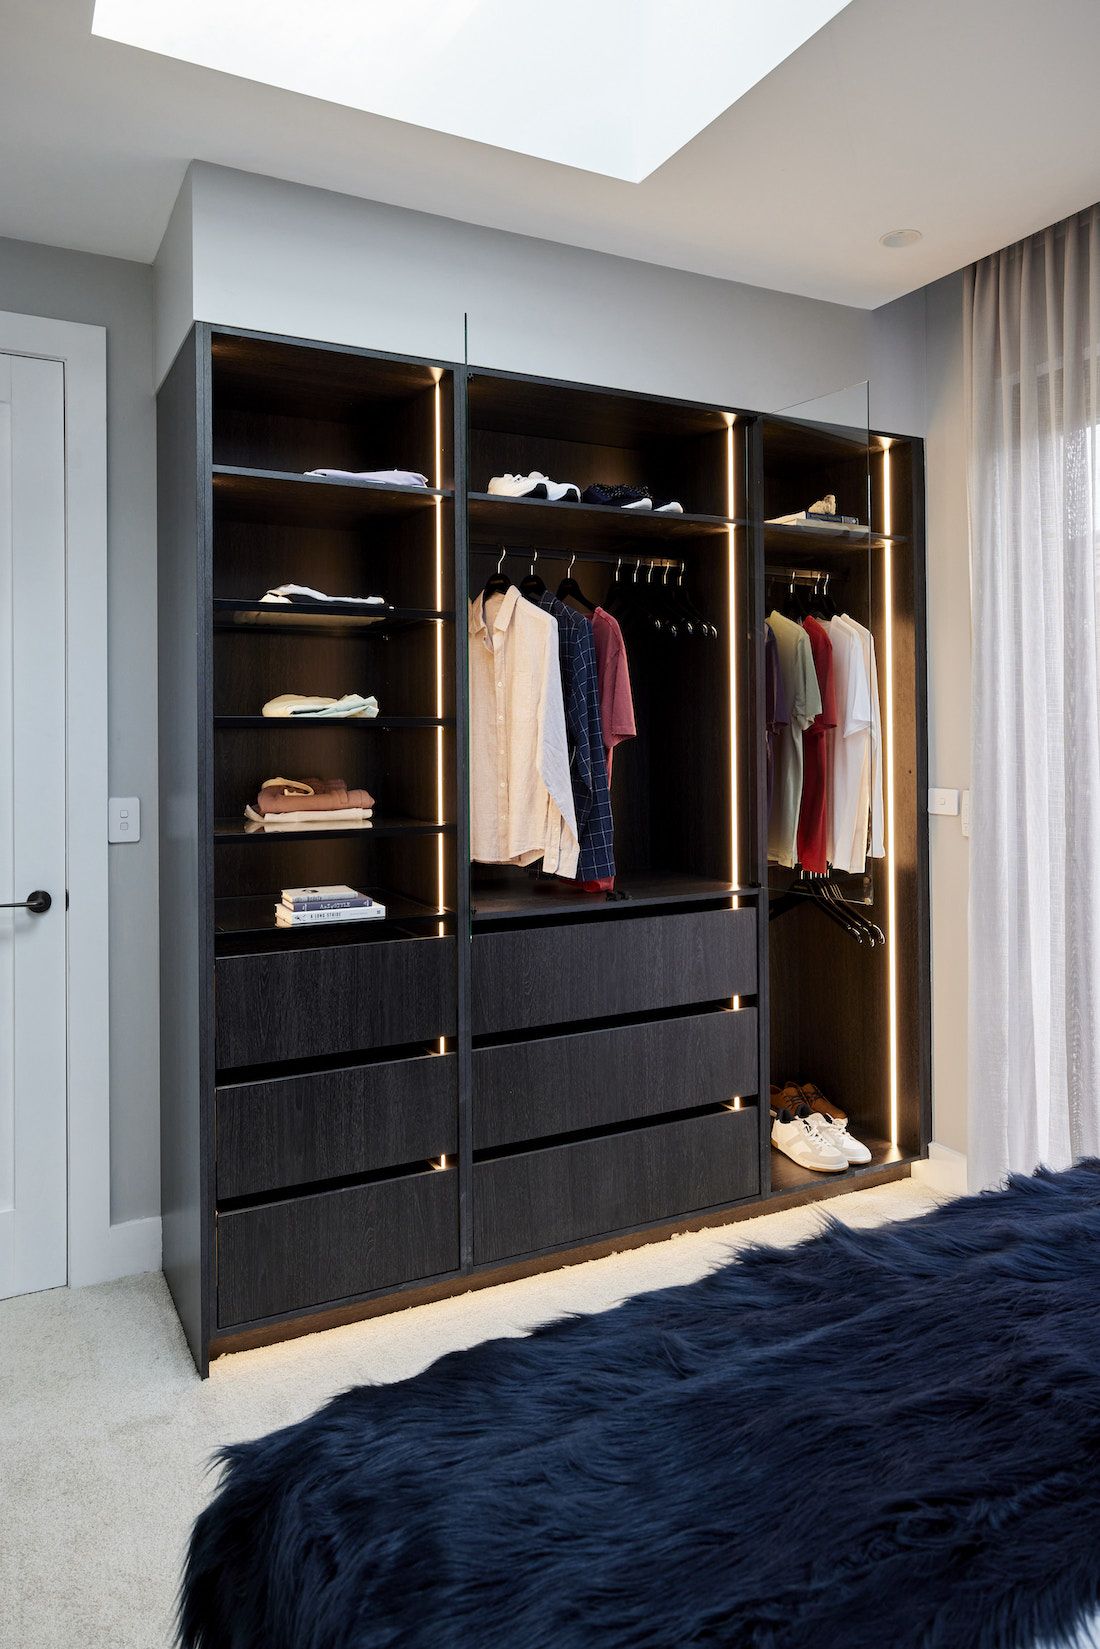 Dark timber built-in cabinetry with glass doors